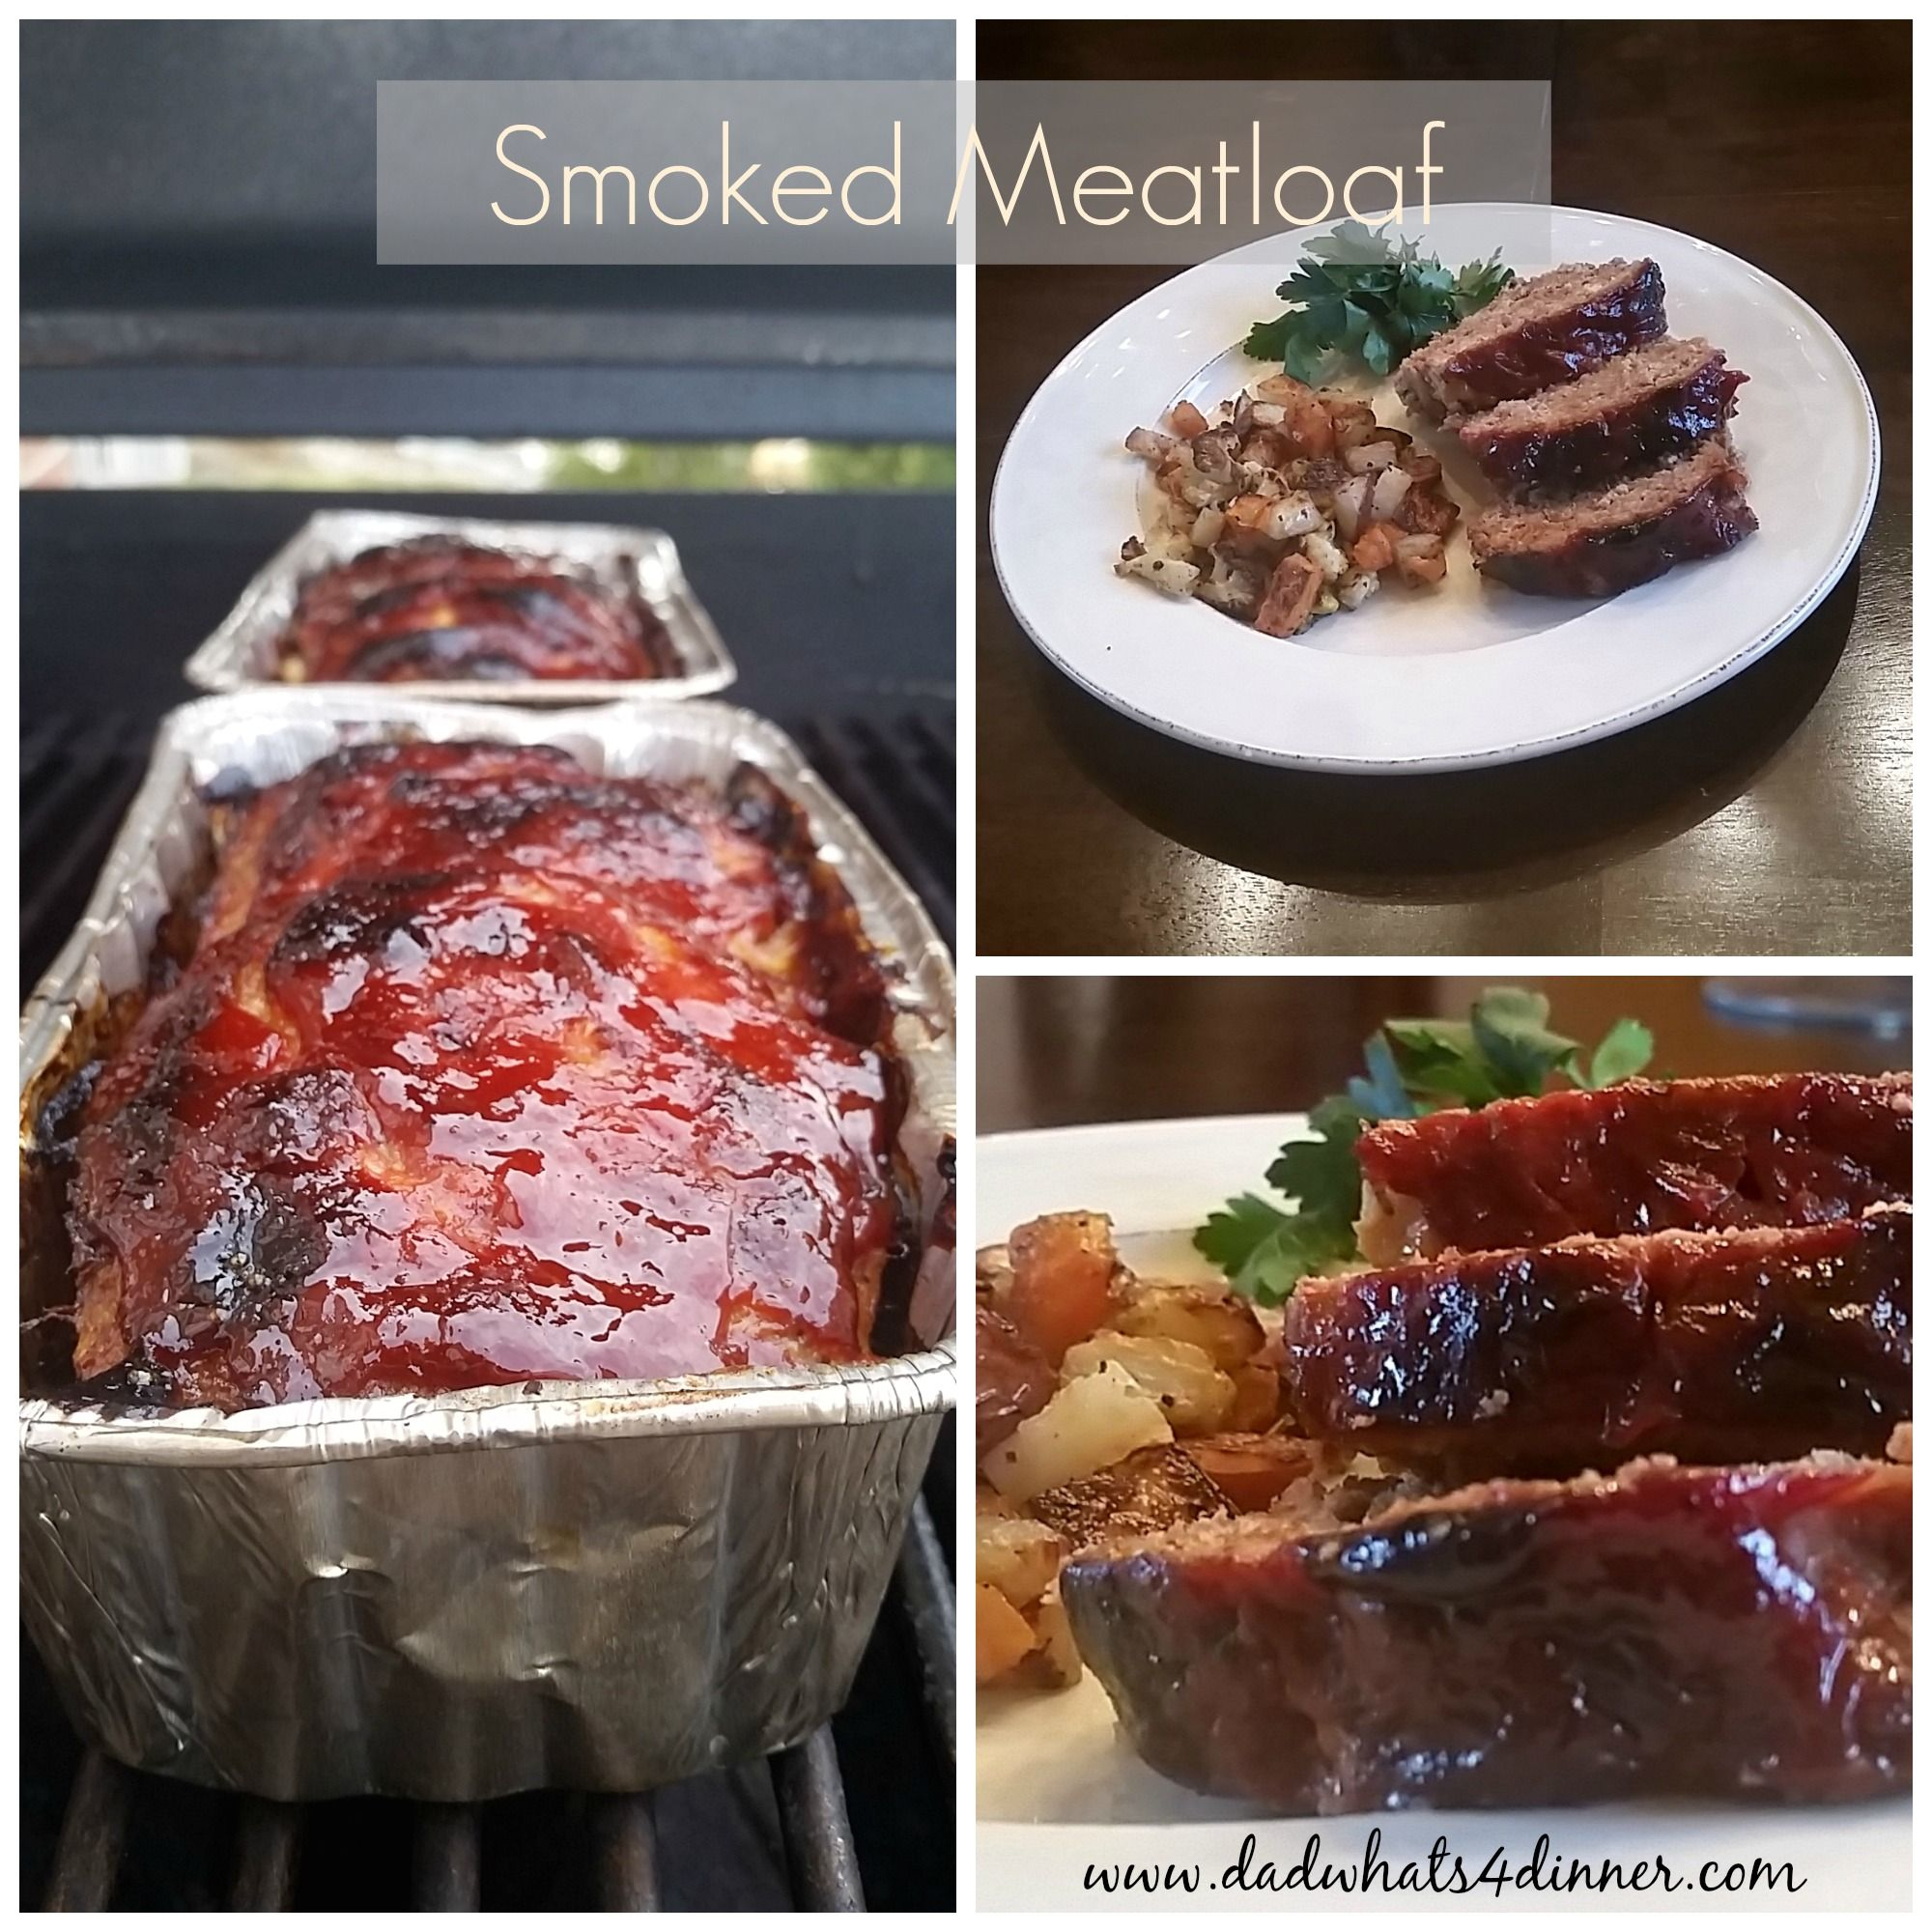 Smoked Meatloaf via @dadwhats4dinner